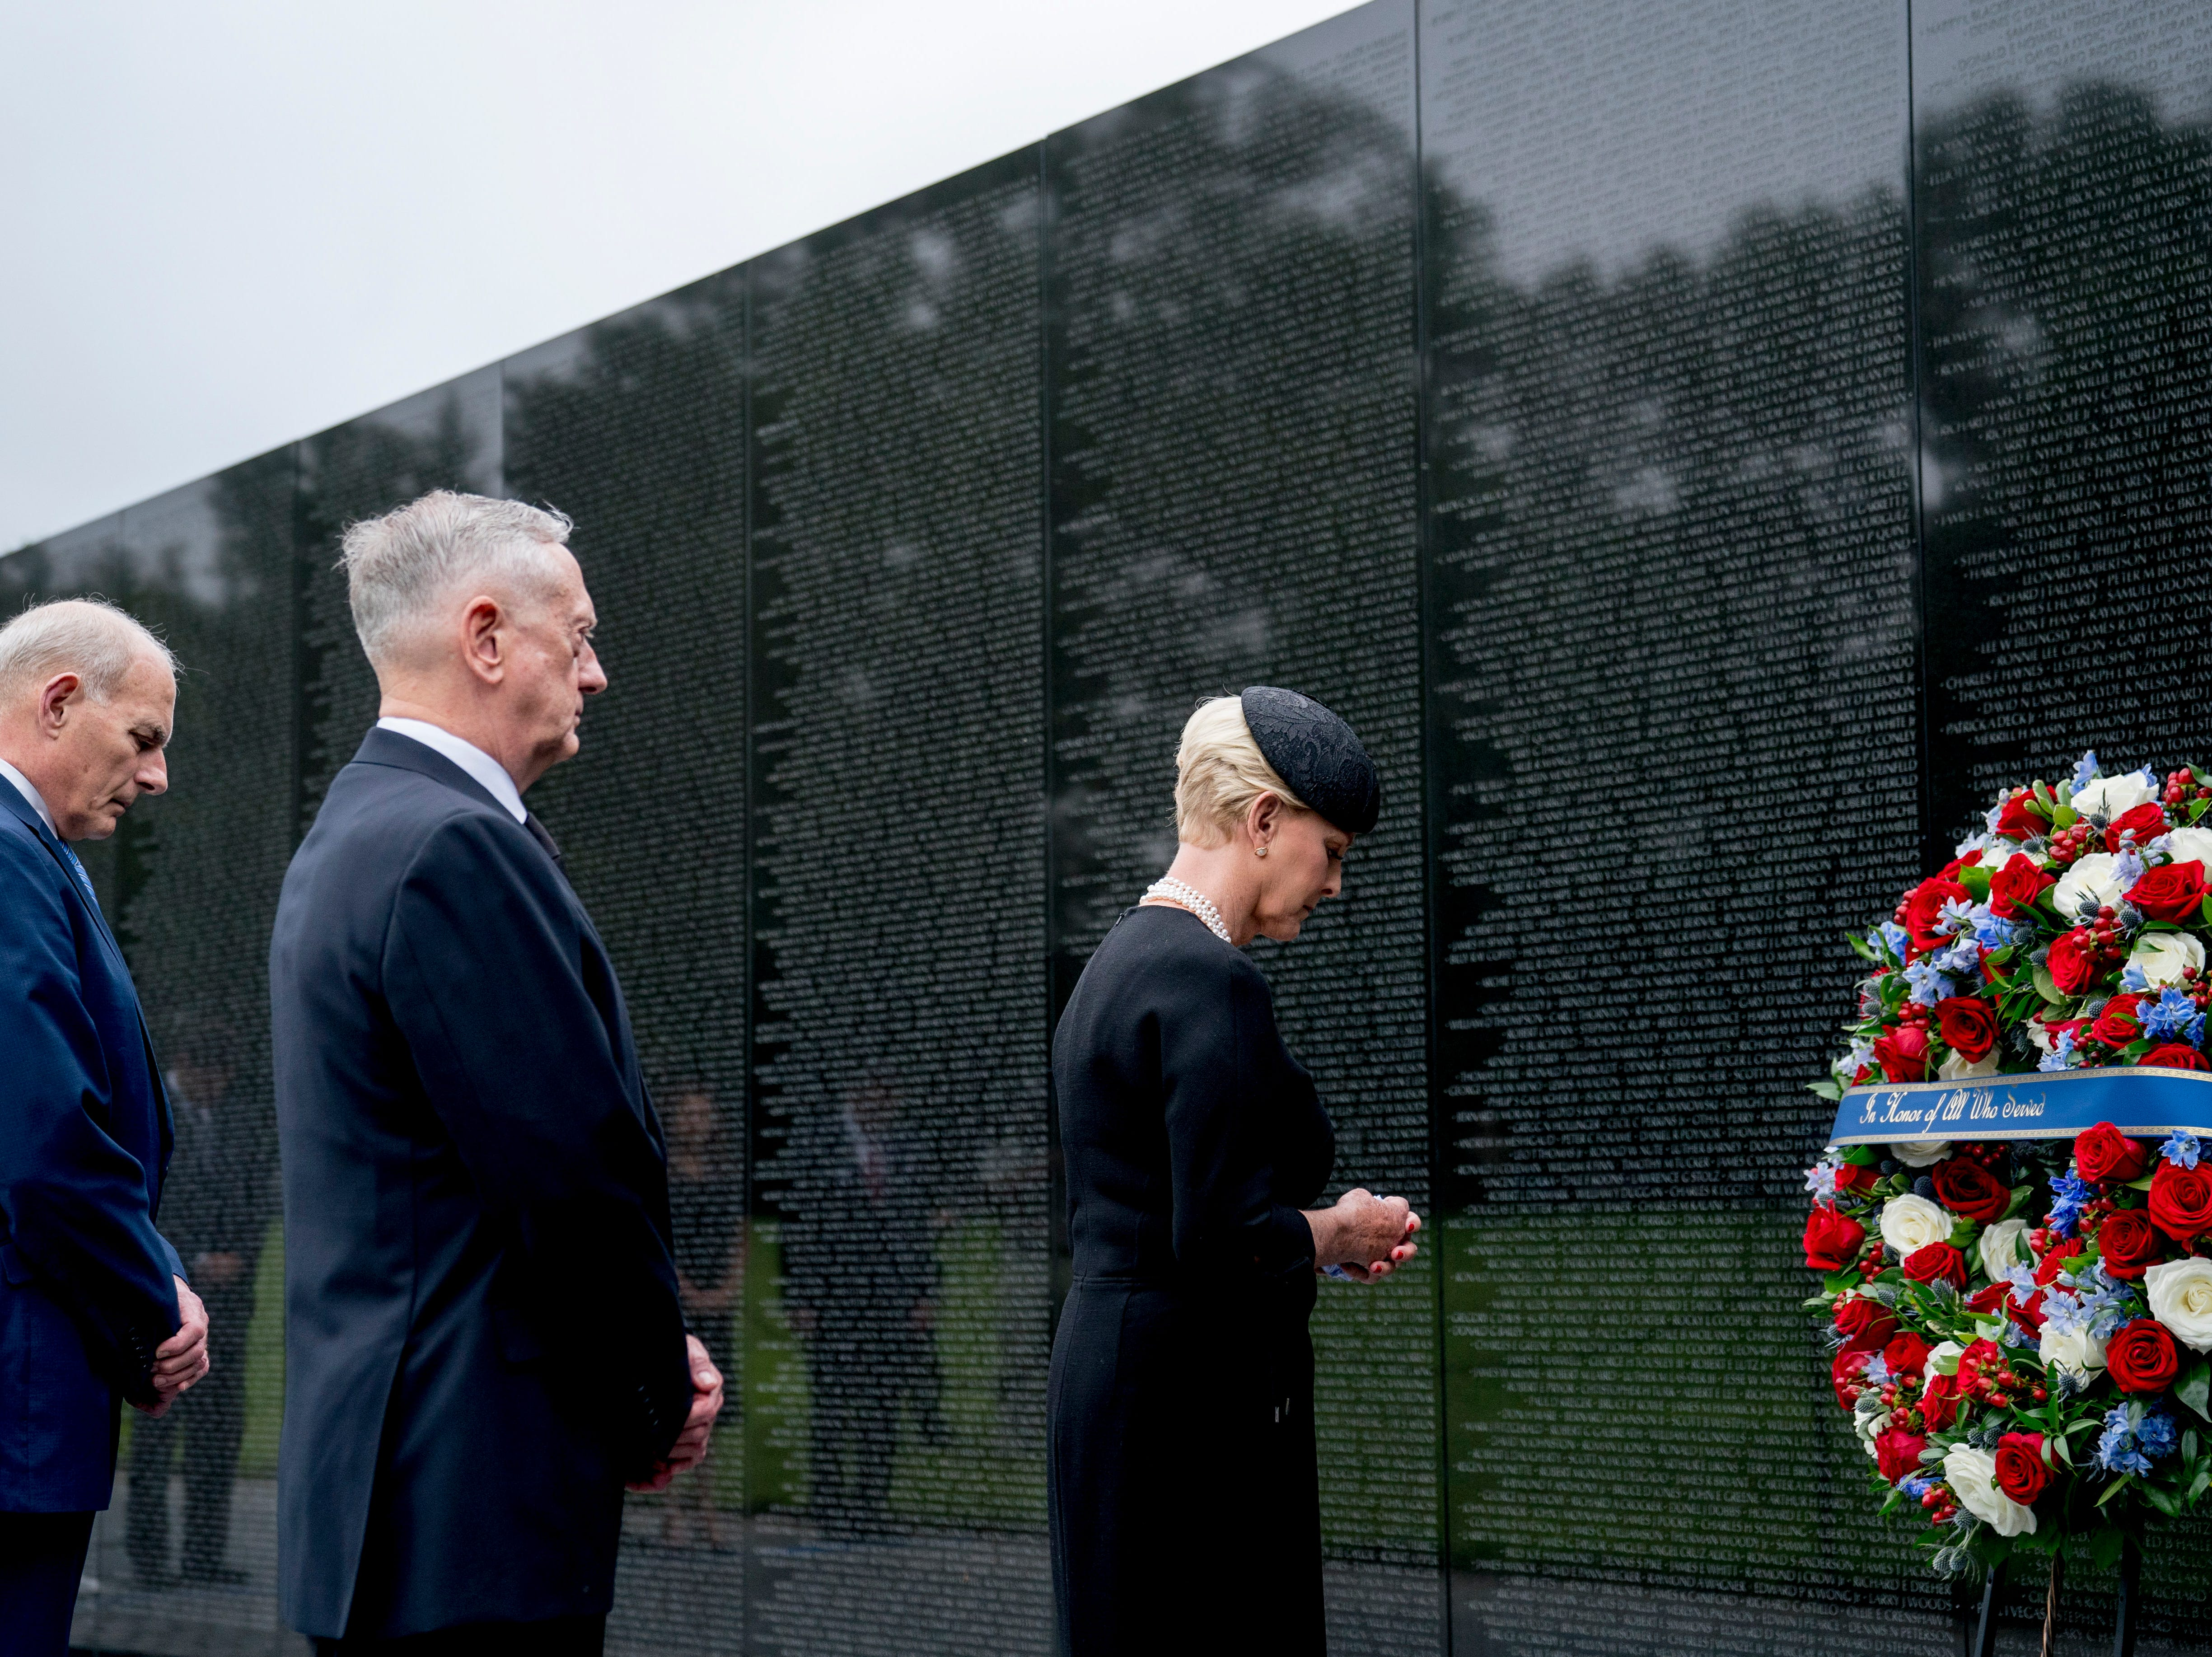 Cindy McCain, widow of, Sen. John McCain, R-Ariz., accompanied by President Donald Trump's Chief of Staff John Kelly (L) and Defense Secretary Jim Mattis (2-L) lays a wreath at the Vietnam Veterans Memorial in Washington, on Sept. 1, 2018, during a funeral procession to carry the casket of her husband from the US Capitol to National Cathedral for a Memorial Service. McCain died Aug. 25, 2018 from brain cancer at his ranch in Sedona, Ariz.